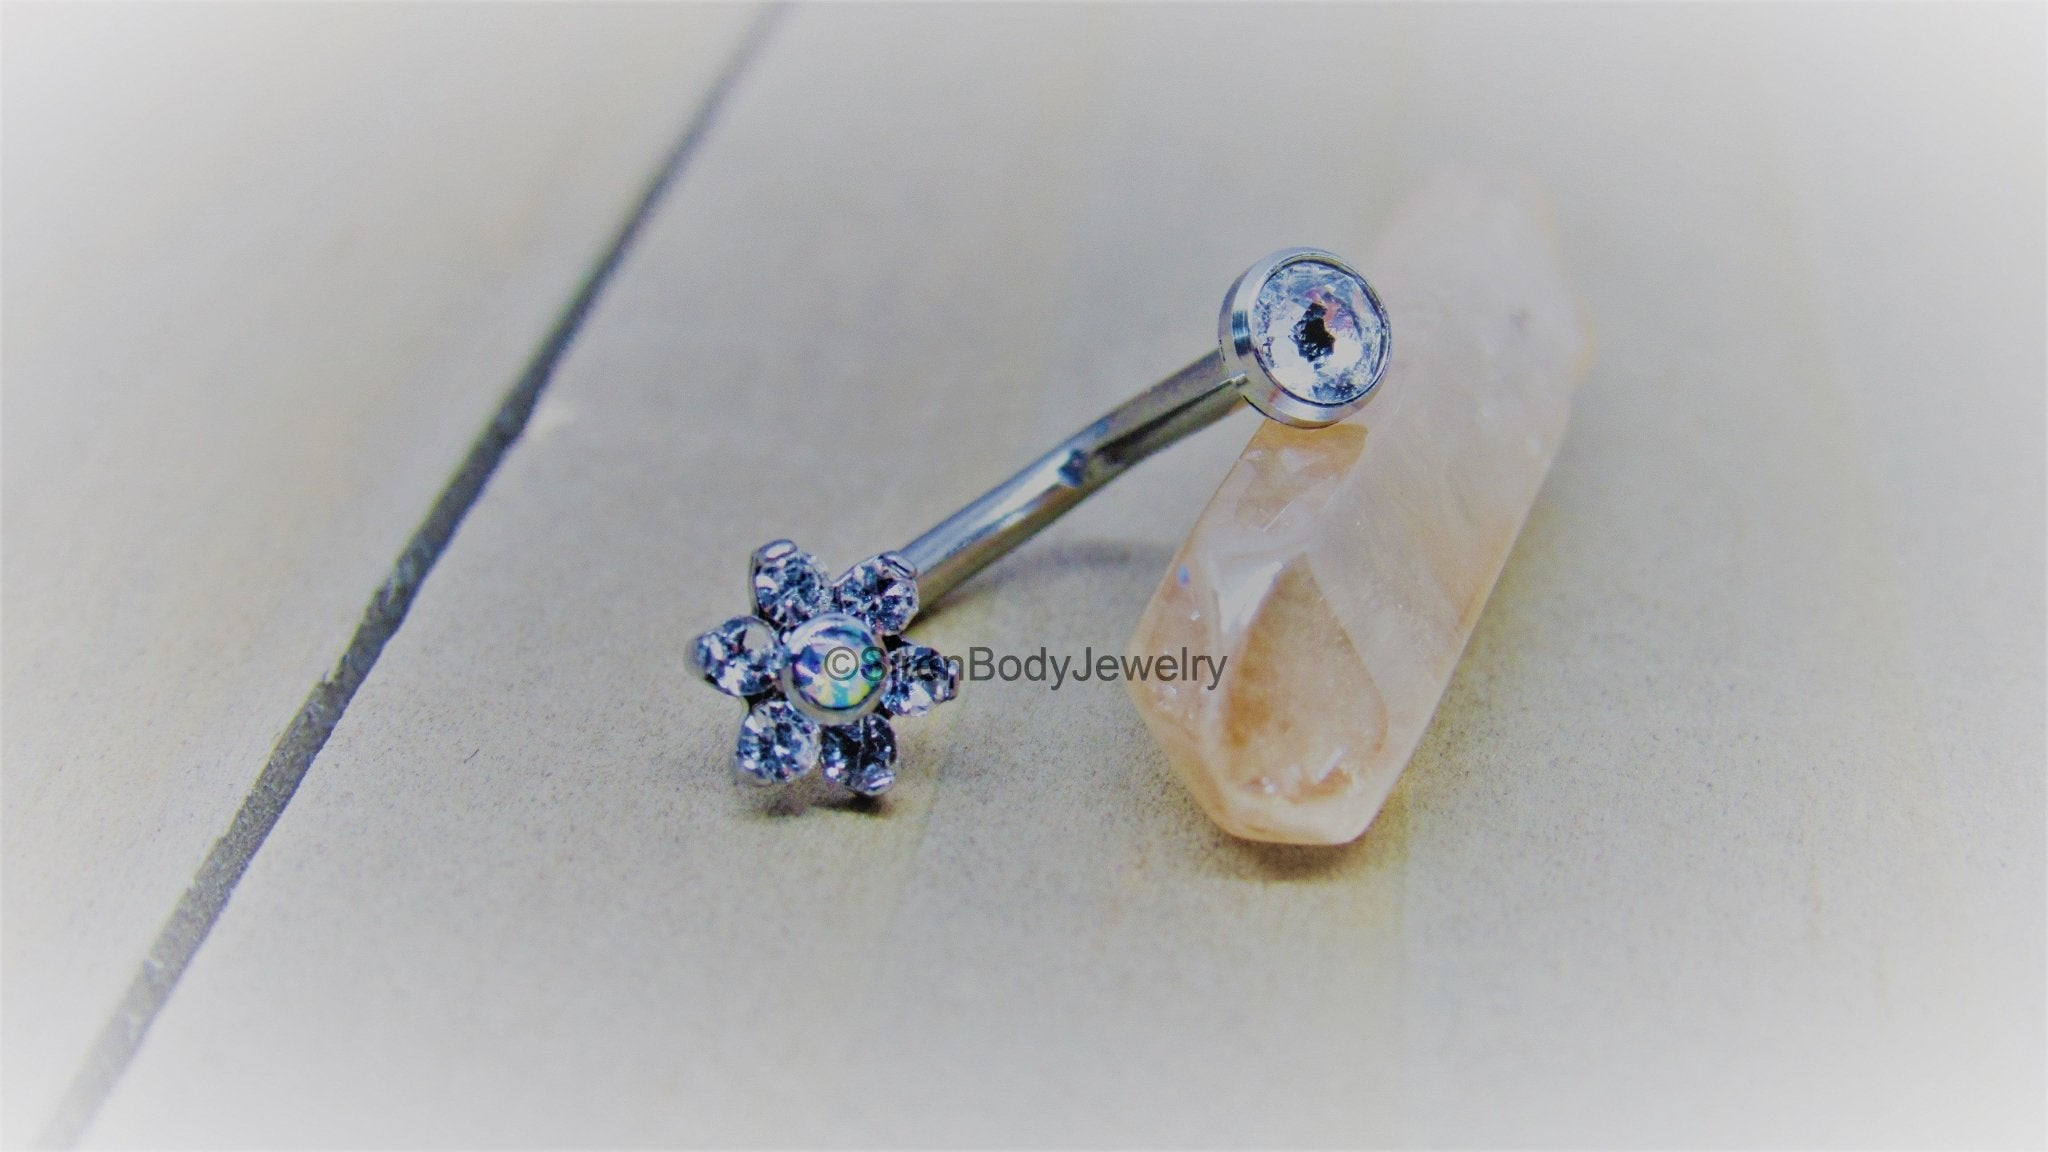 Clear Prong Set Star Gem with Italian Flag Dangle Belly Button Ring Navel Body Piercing Jewelry